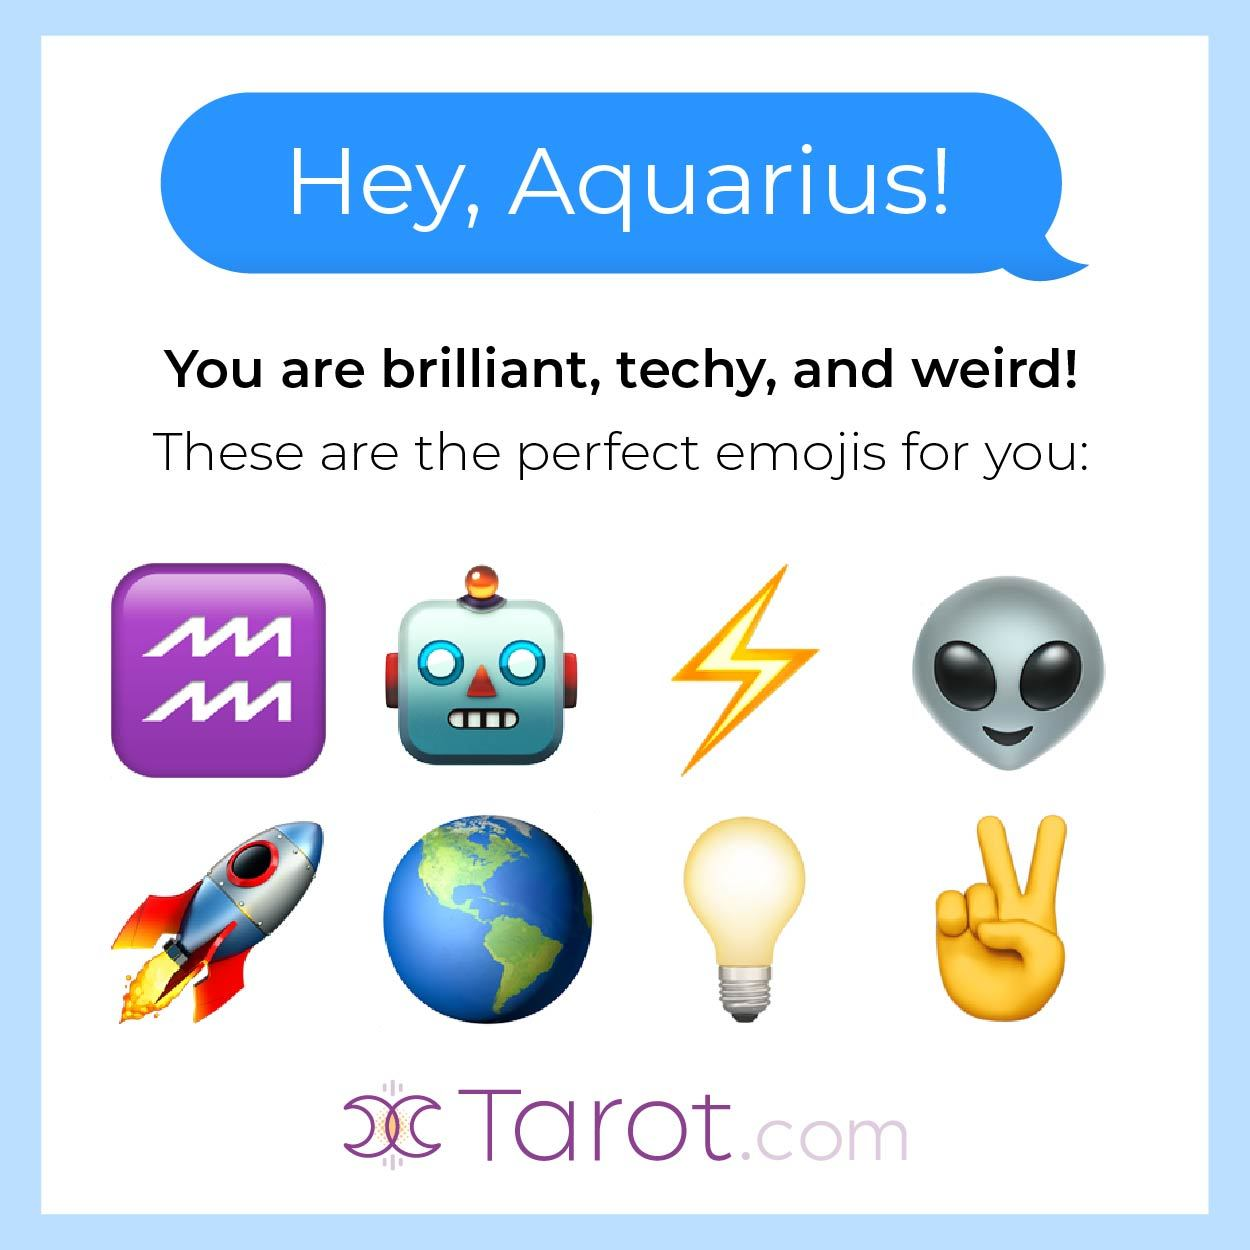 Aquarius Emojis